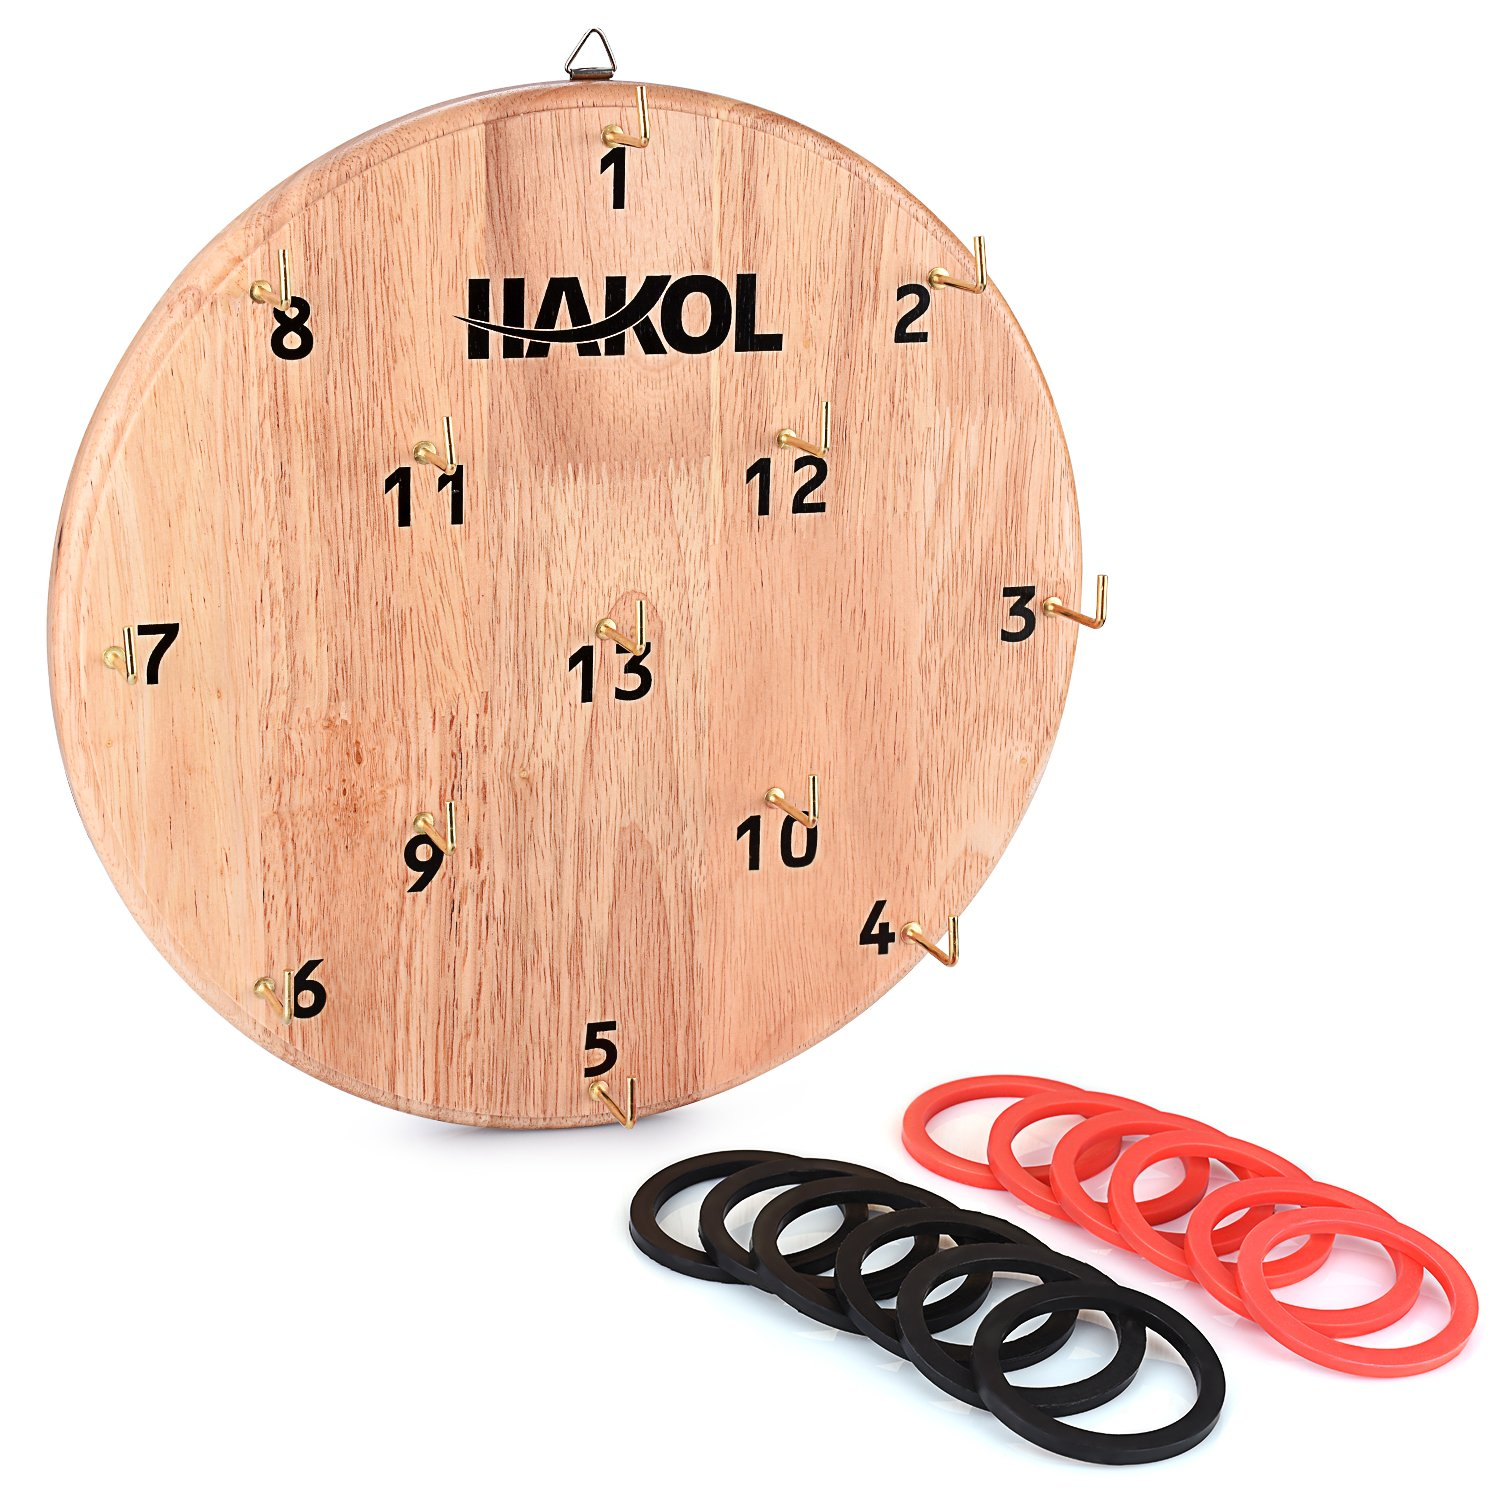 HAKOL Ultimate Hook & Ring Toss Game For Kids & Adults By Fun & Educational Alternative To Throwing Darts | Sturdy Board, Safe & Durable Design | Great For Home Or Office Idea